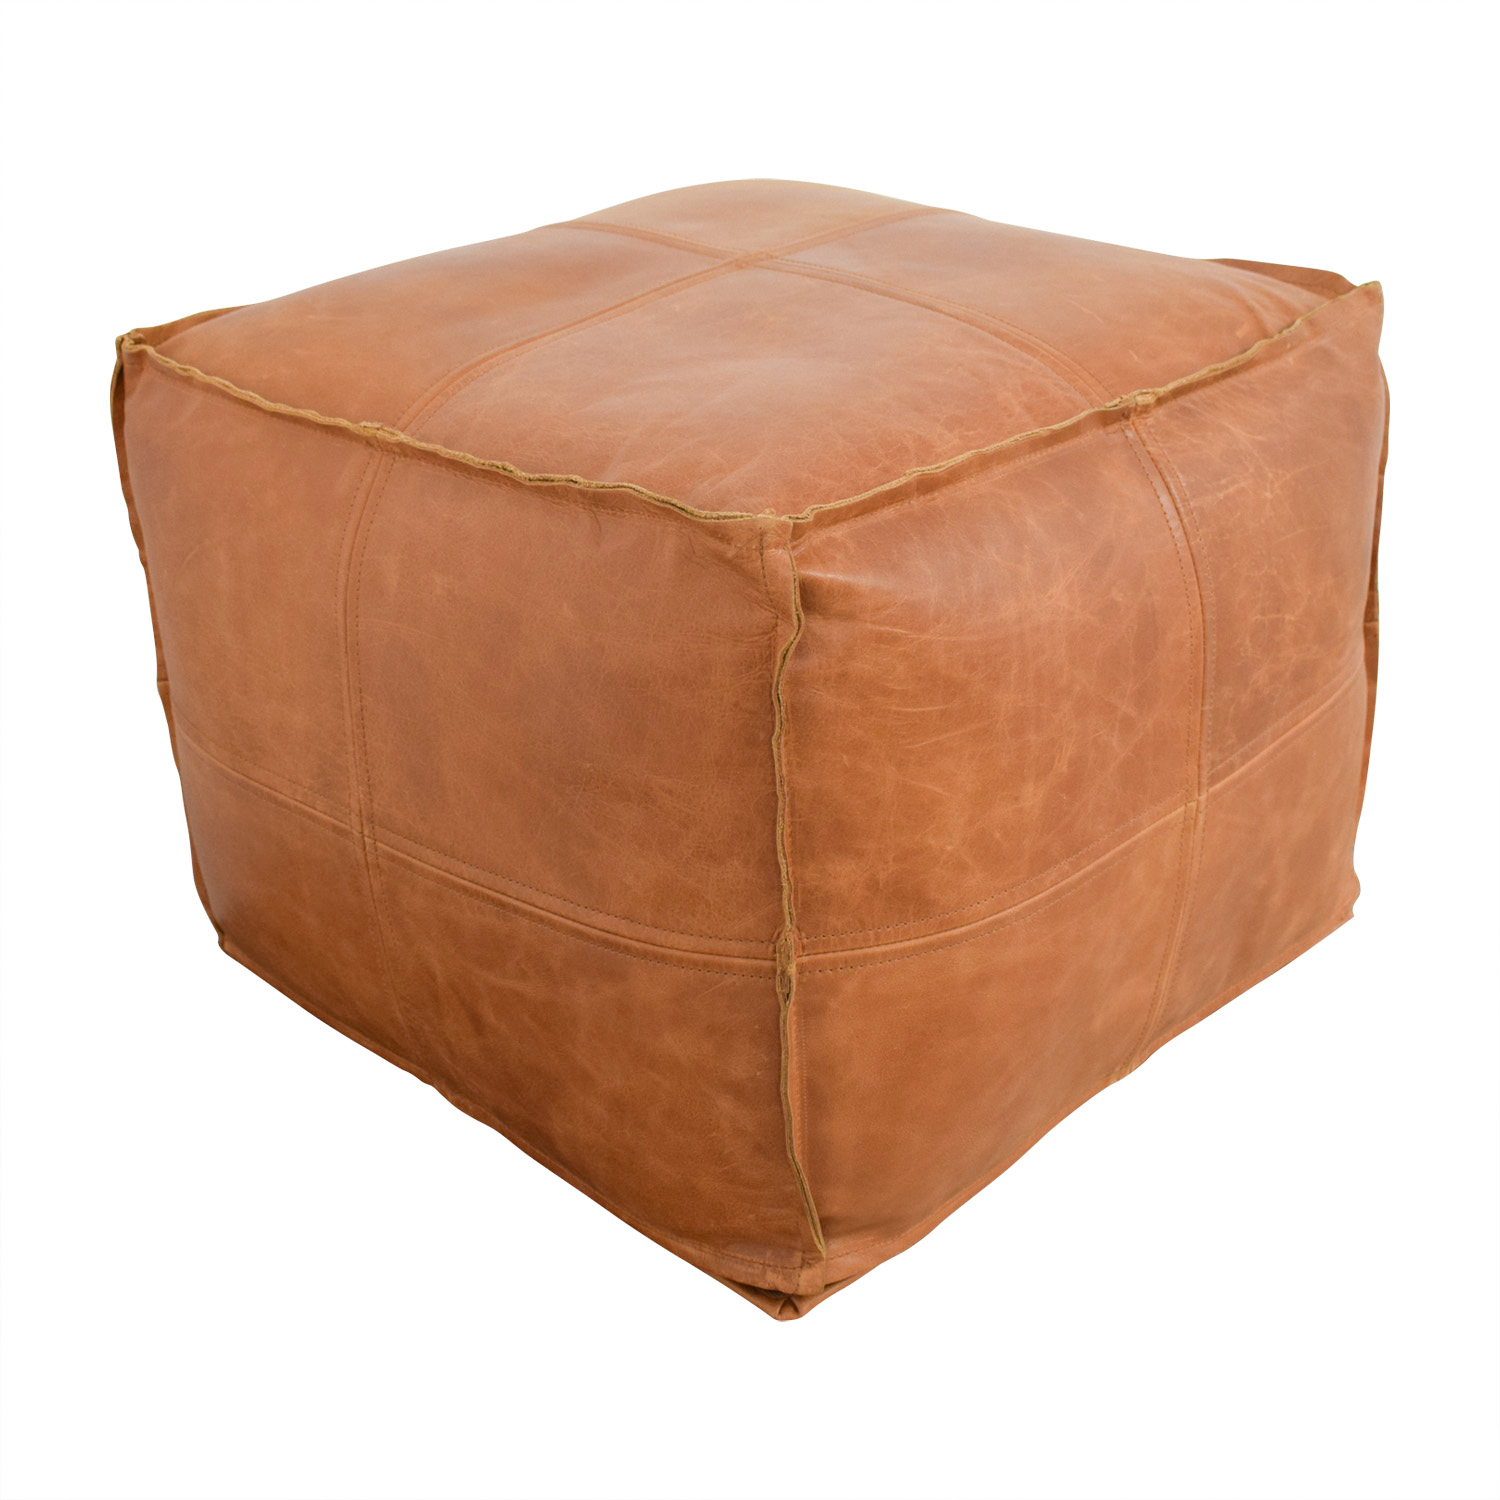 41 Off Cb2 Cb2 Saddle Brown Leather Pouf Chairs